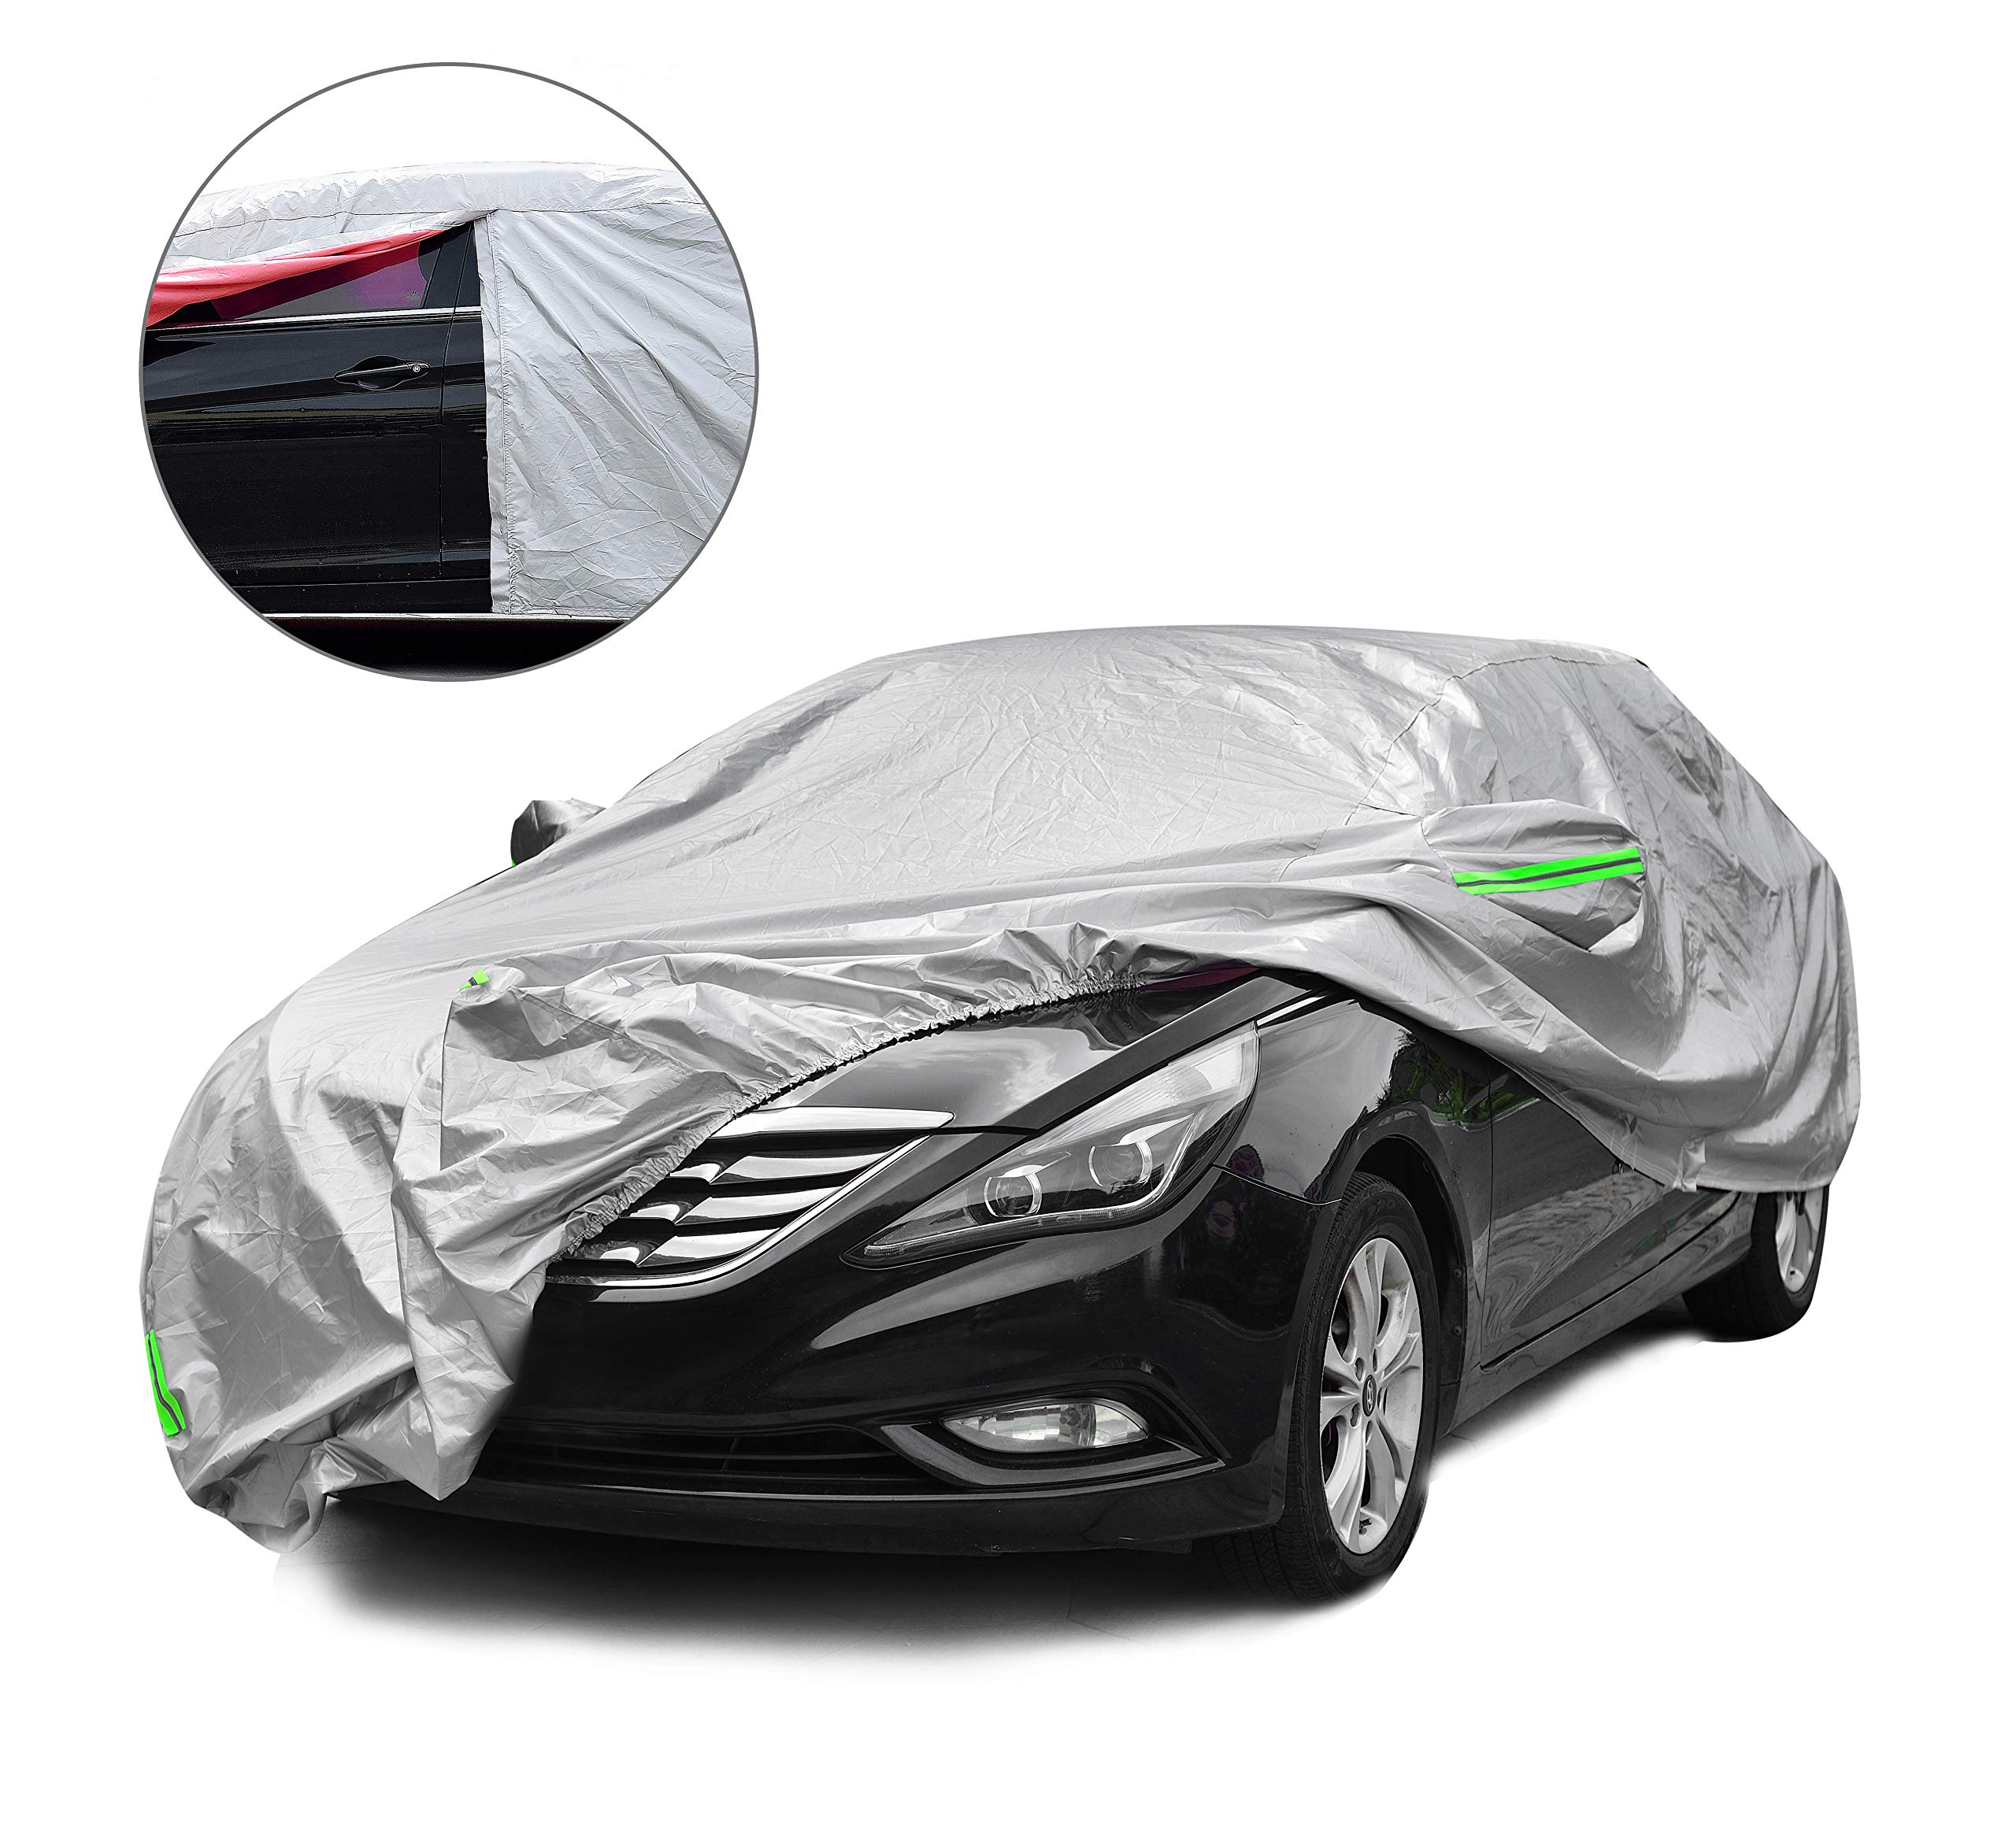 Black Satin Guaranteed Includes Storage Bag Indoor Car Cover Compatible with Chevrolet Corvette Stingray 1968-1982 Ultra Soft Indoor Material C3